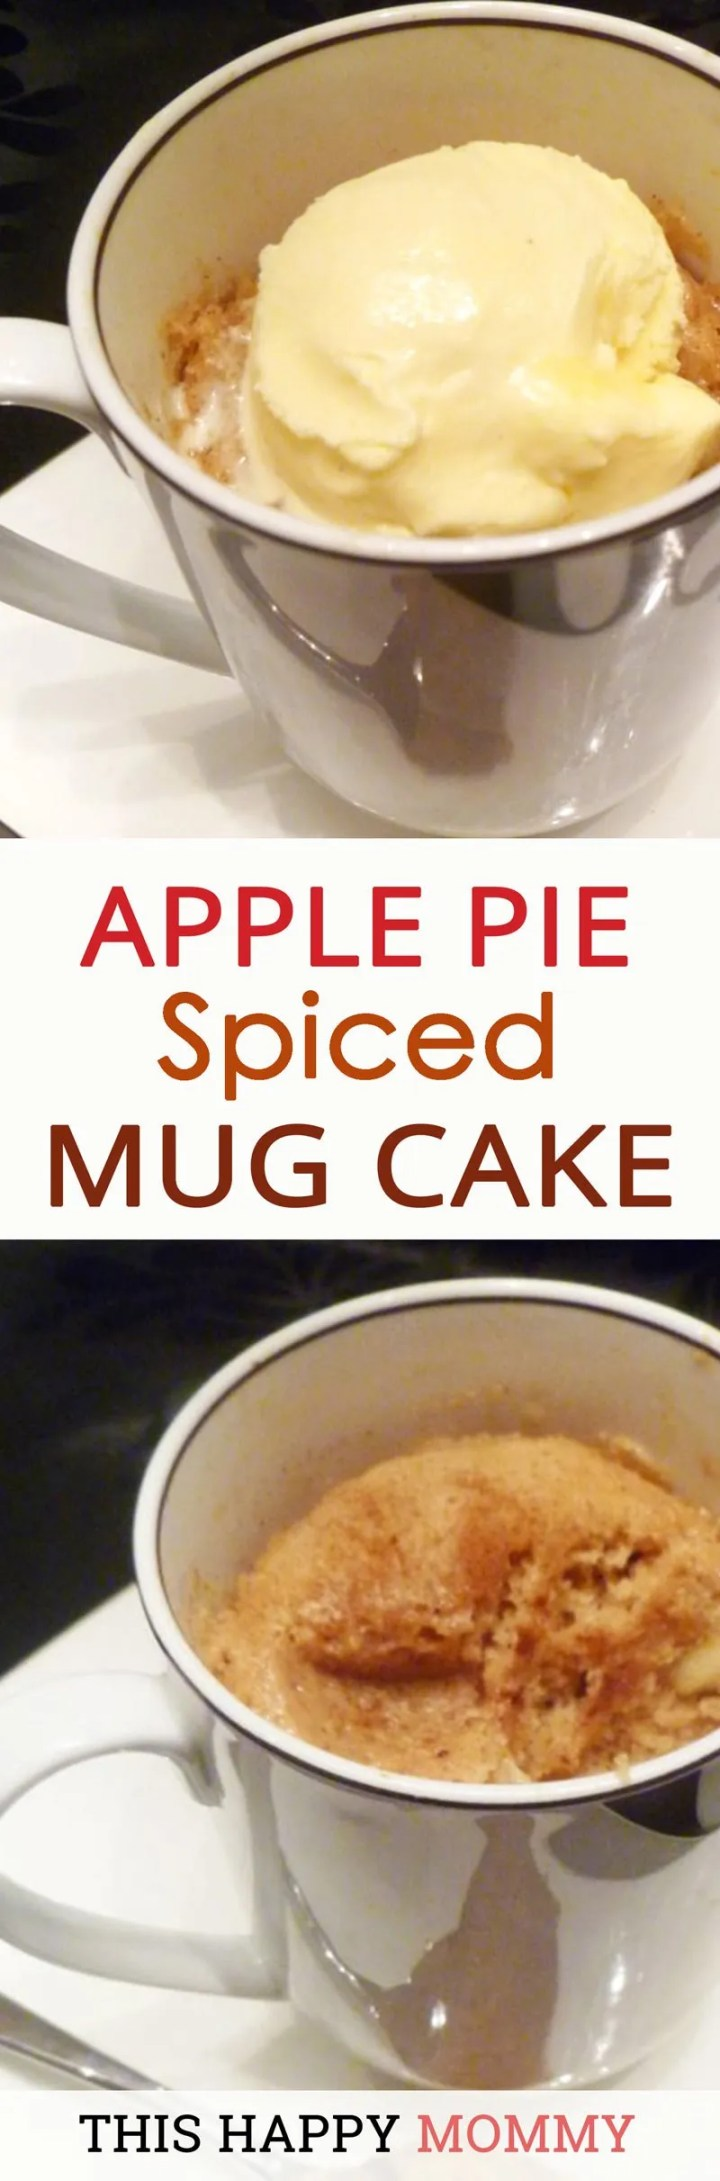 You will love this easy pie dessert cake! A perfectly spongy cake filled with all the flavors of baked apple pie. Apple Pie Spiced Mug Cake is a tasty single-serving cake that's ready in less than 5 minutes. Quick and Easy Dessert   5 minute Microwave Cake   thishappymommy.com